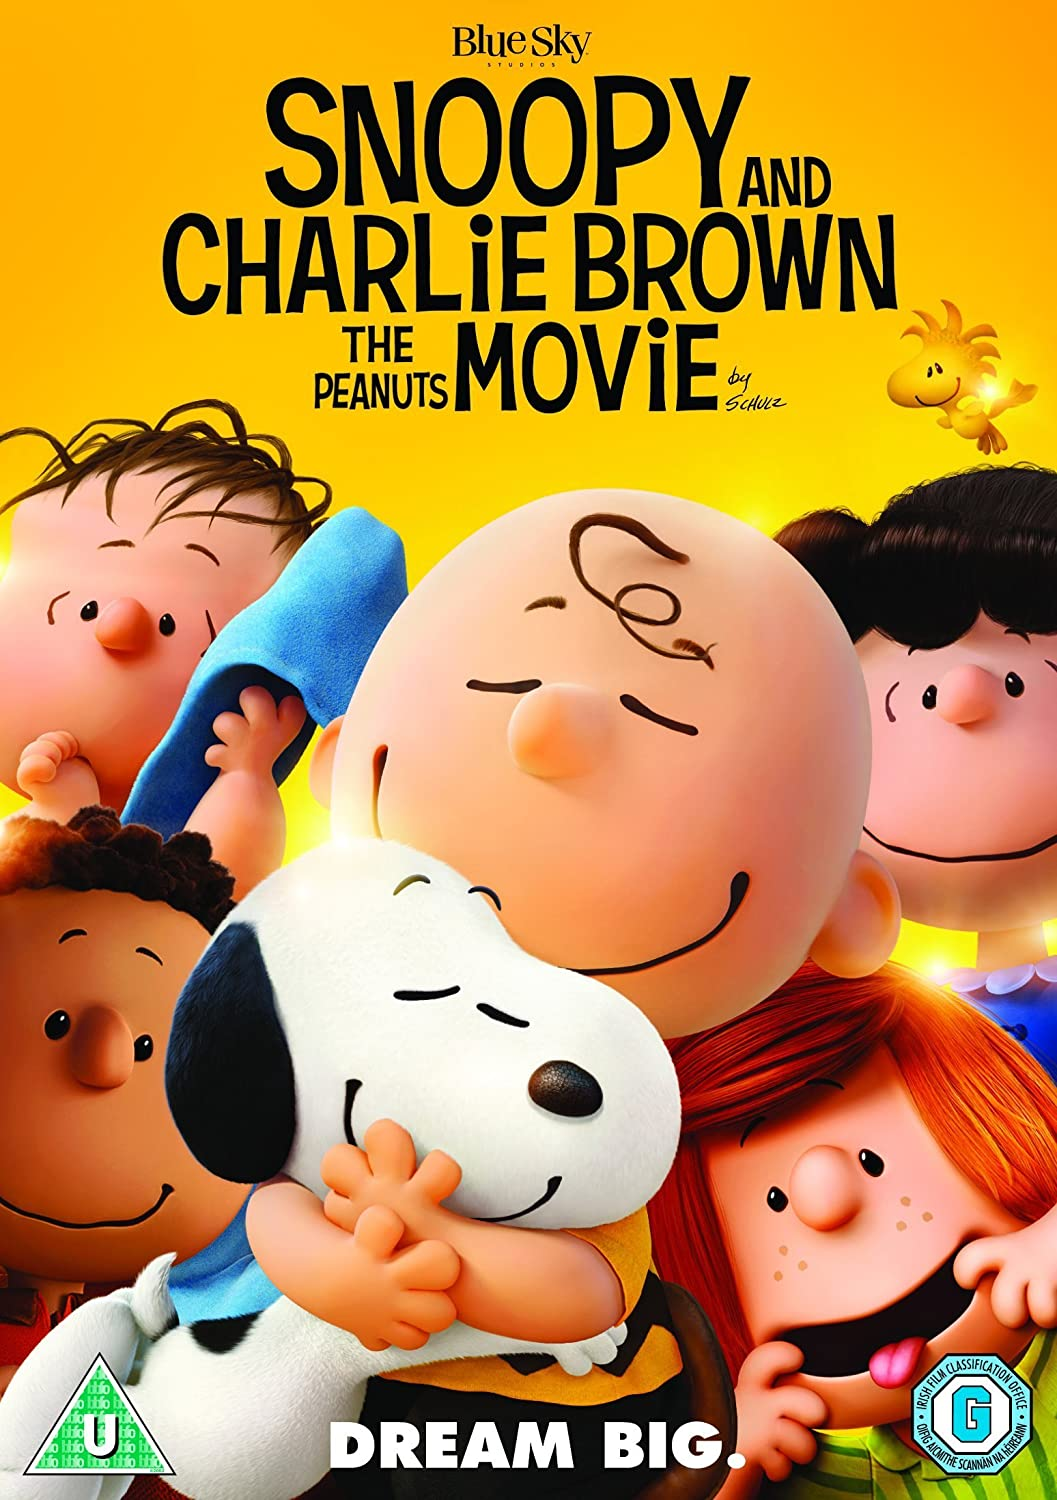 dc4dc7096503 Snoopy And Charlie Brown The Peanuts Movie DVD 2015: Amazon.co.uk: Steve  Martino, Paul Feig, Bryan Schulz, Craig Schulz, Michael J. Travers, ...